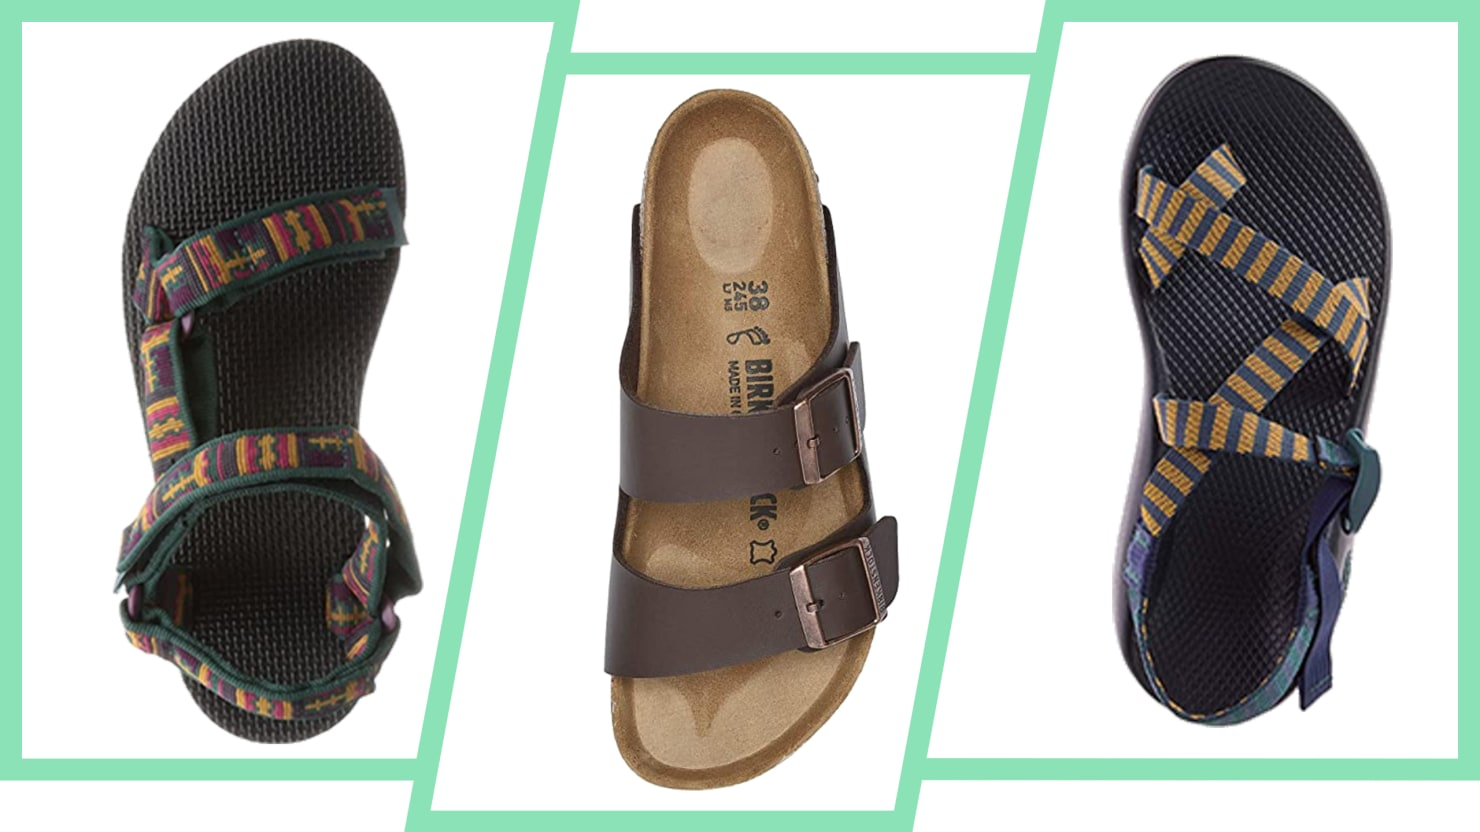 What's The Difference Between Birks, Tevas, and Chacos?